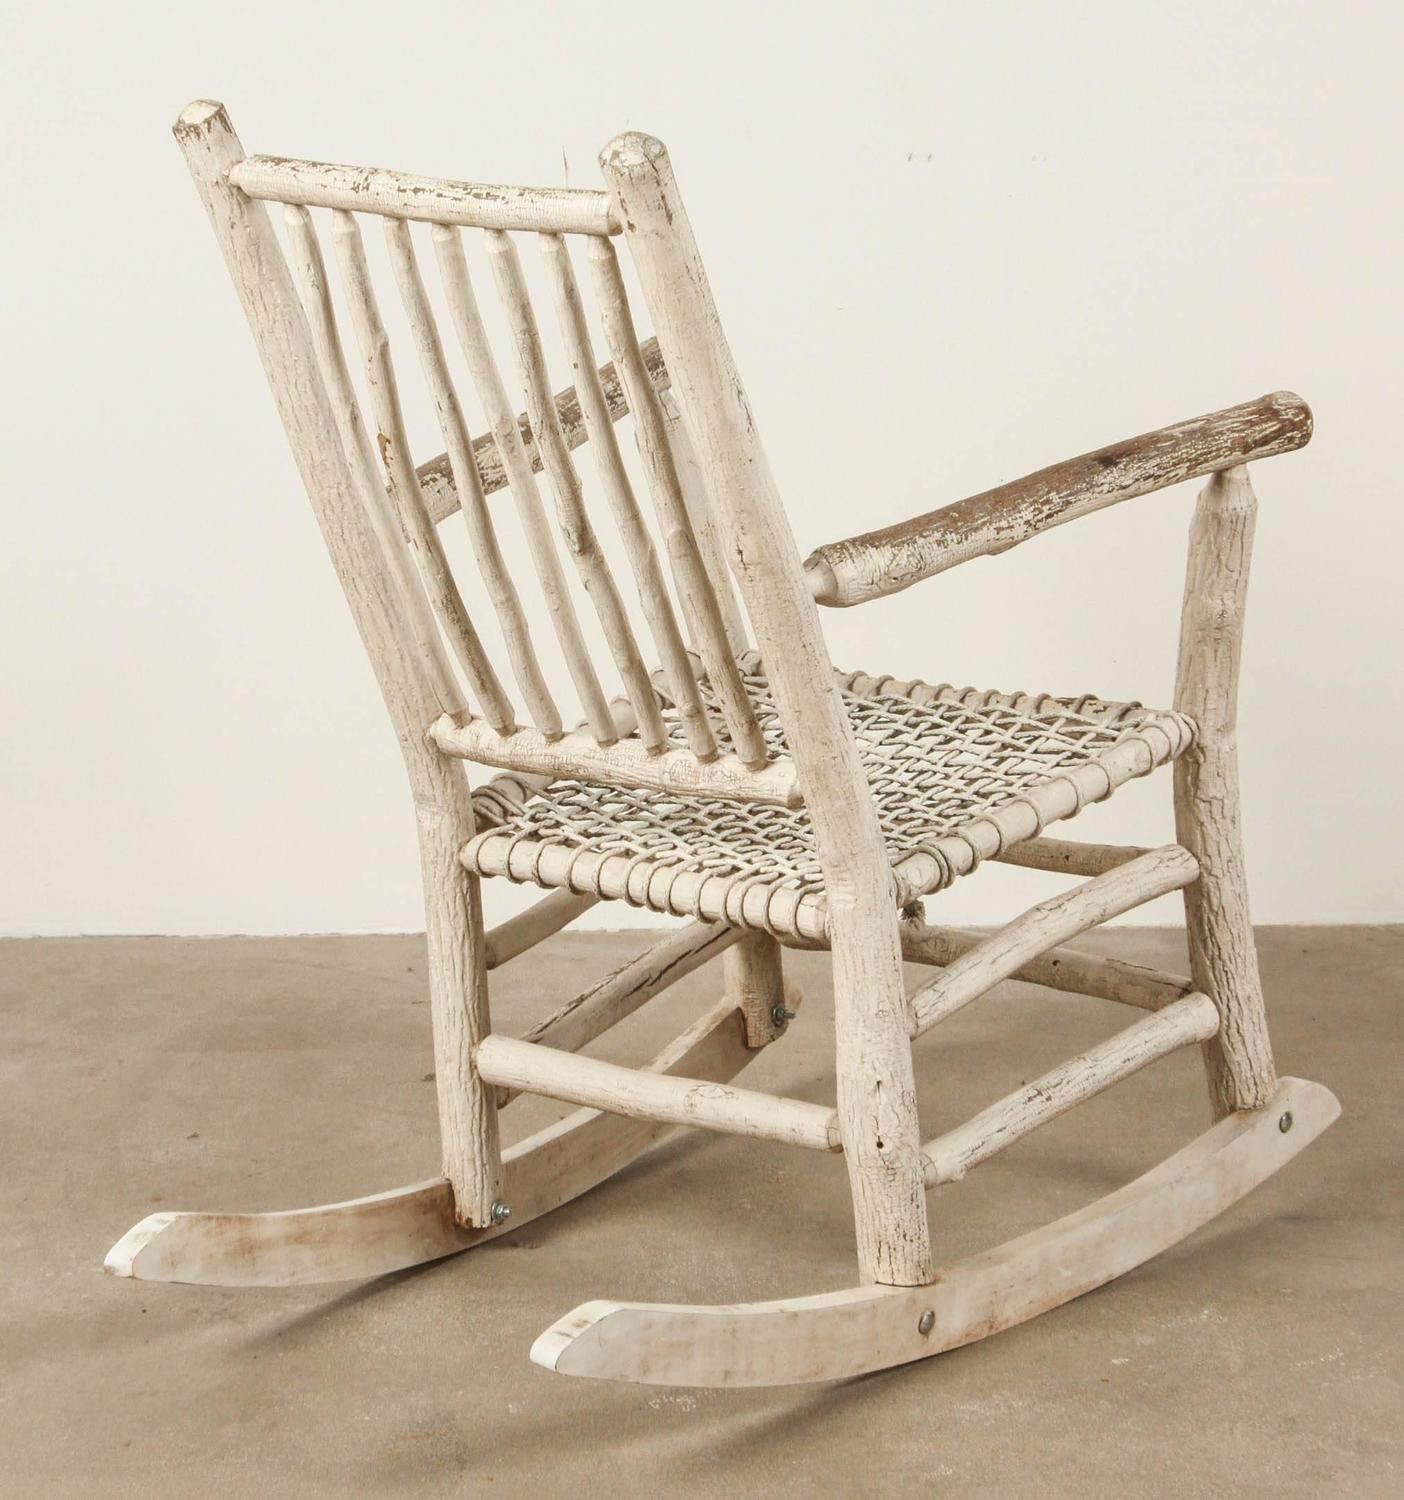 White Wooden Rocking Chairs For Sale White Painted Rustic Rocking Chair For Sale At 1stdibs